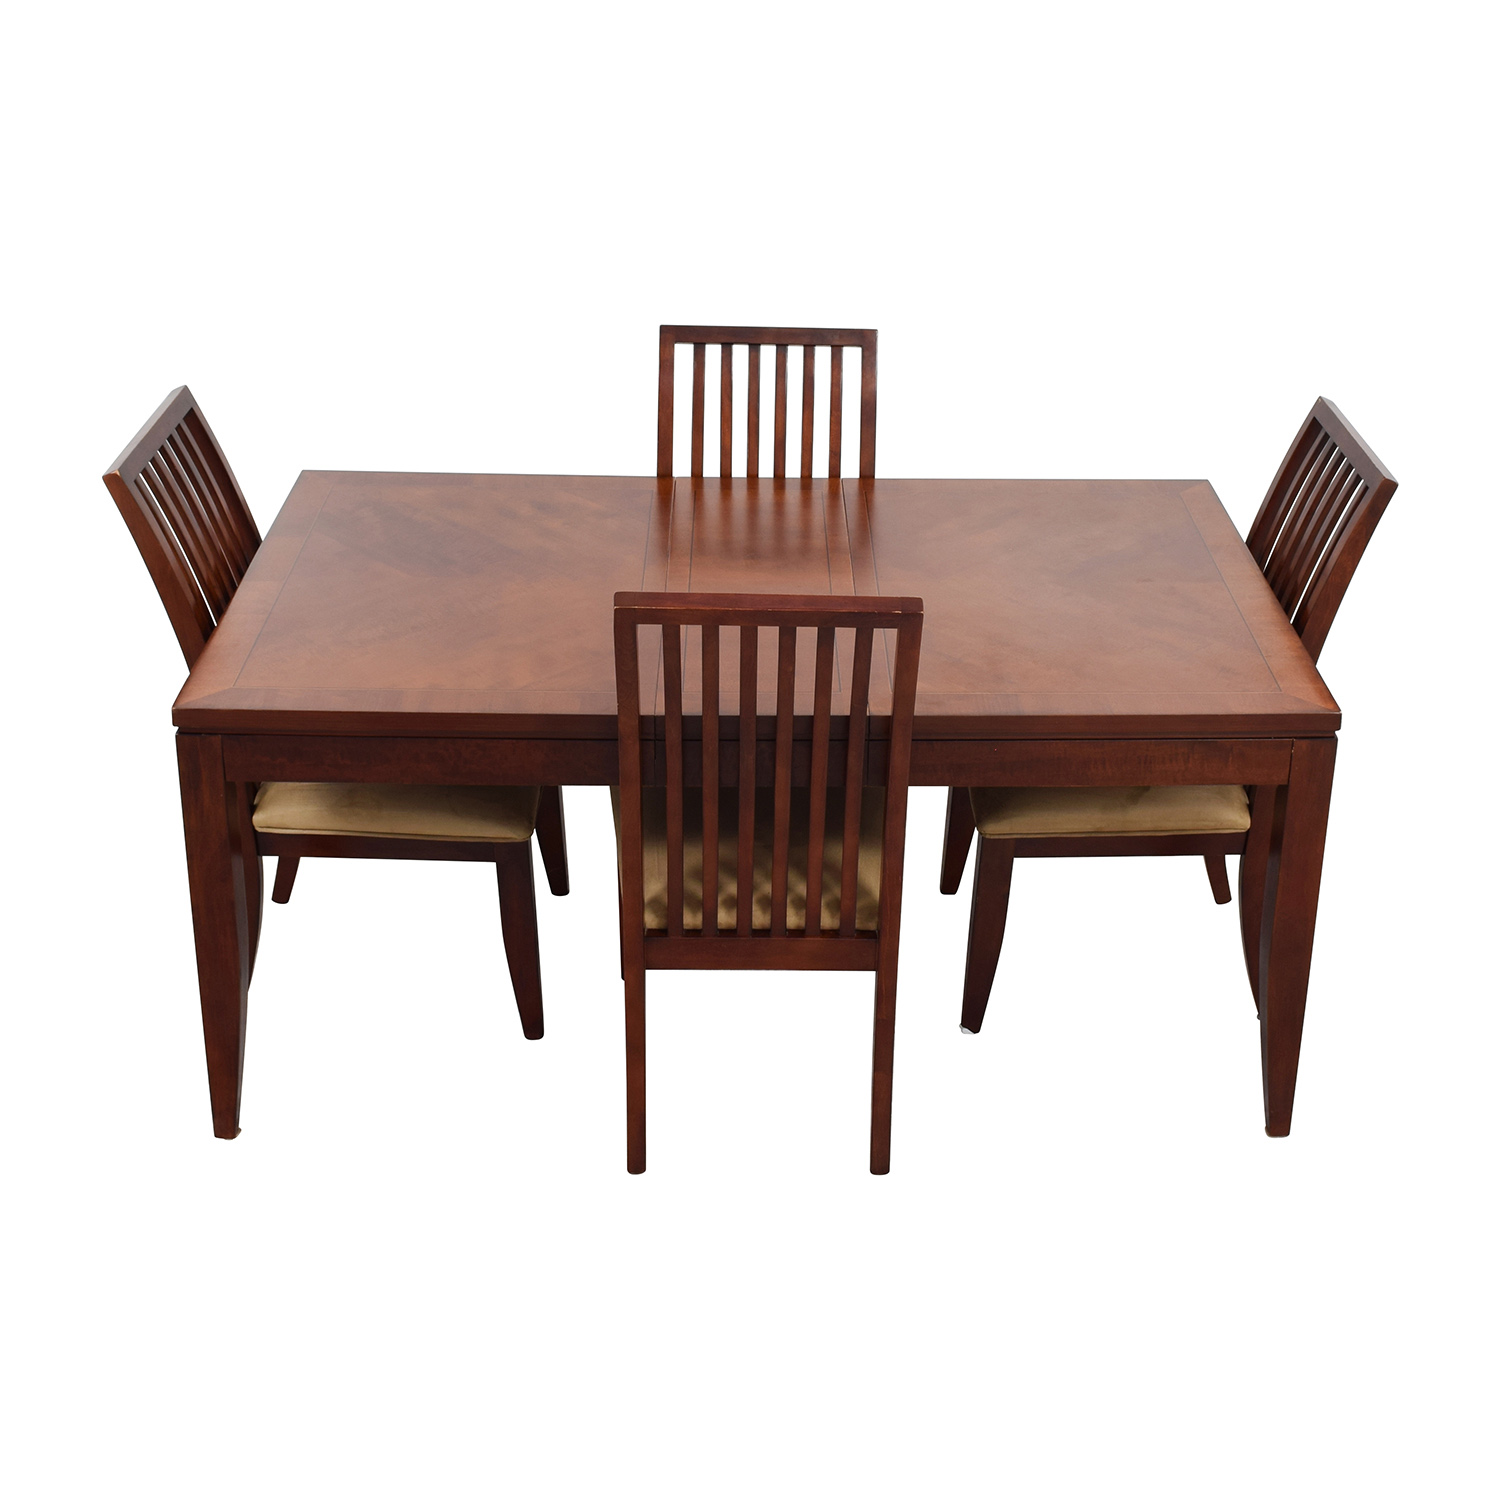 four chair dining set repair outside chairs 84 off macy 39s metropolitan with